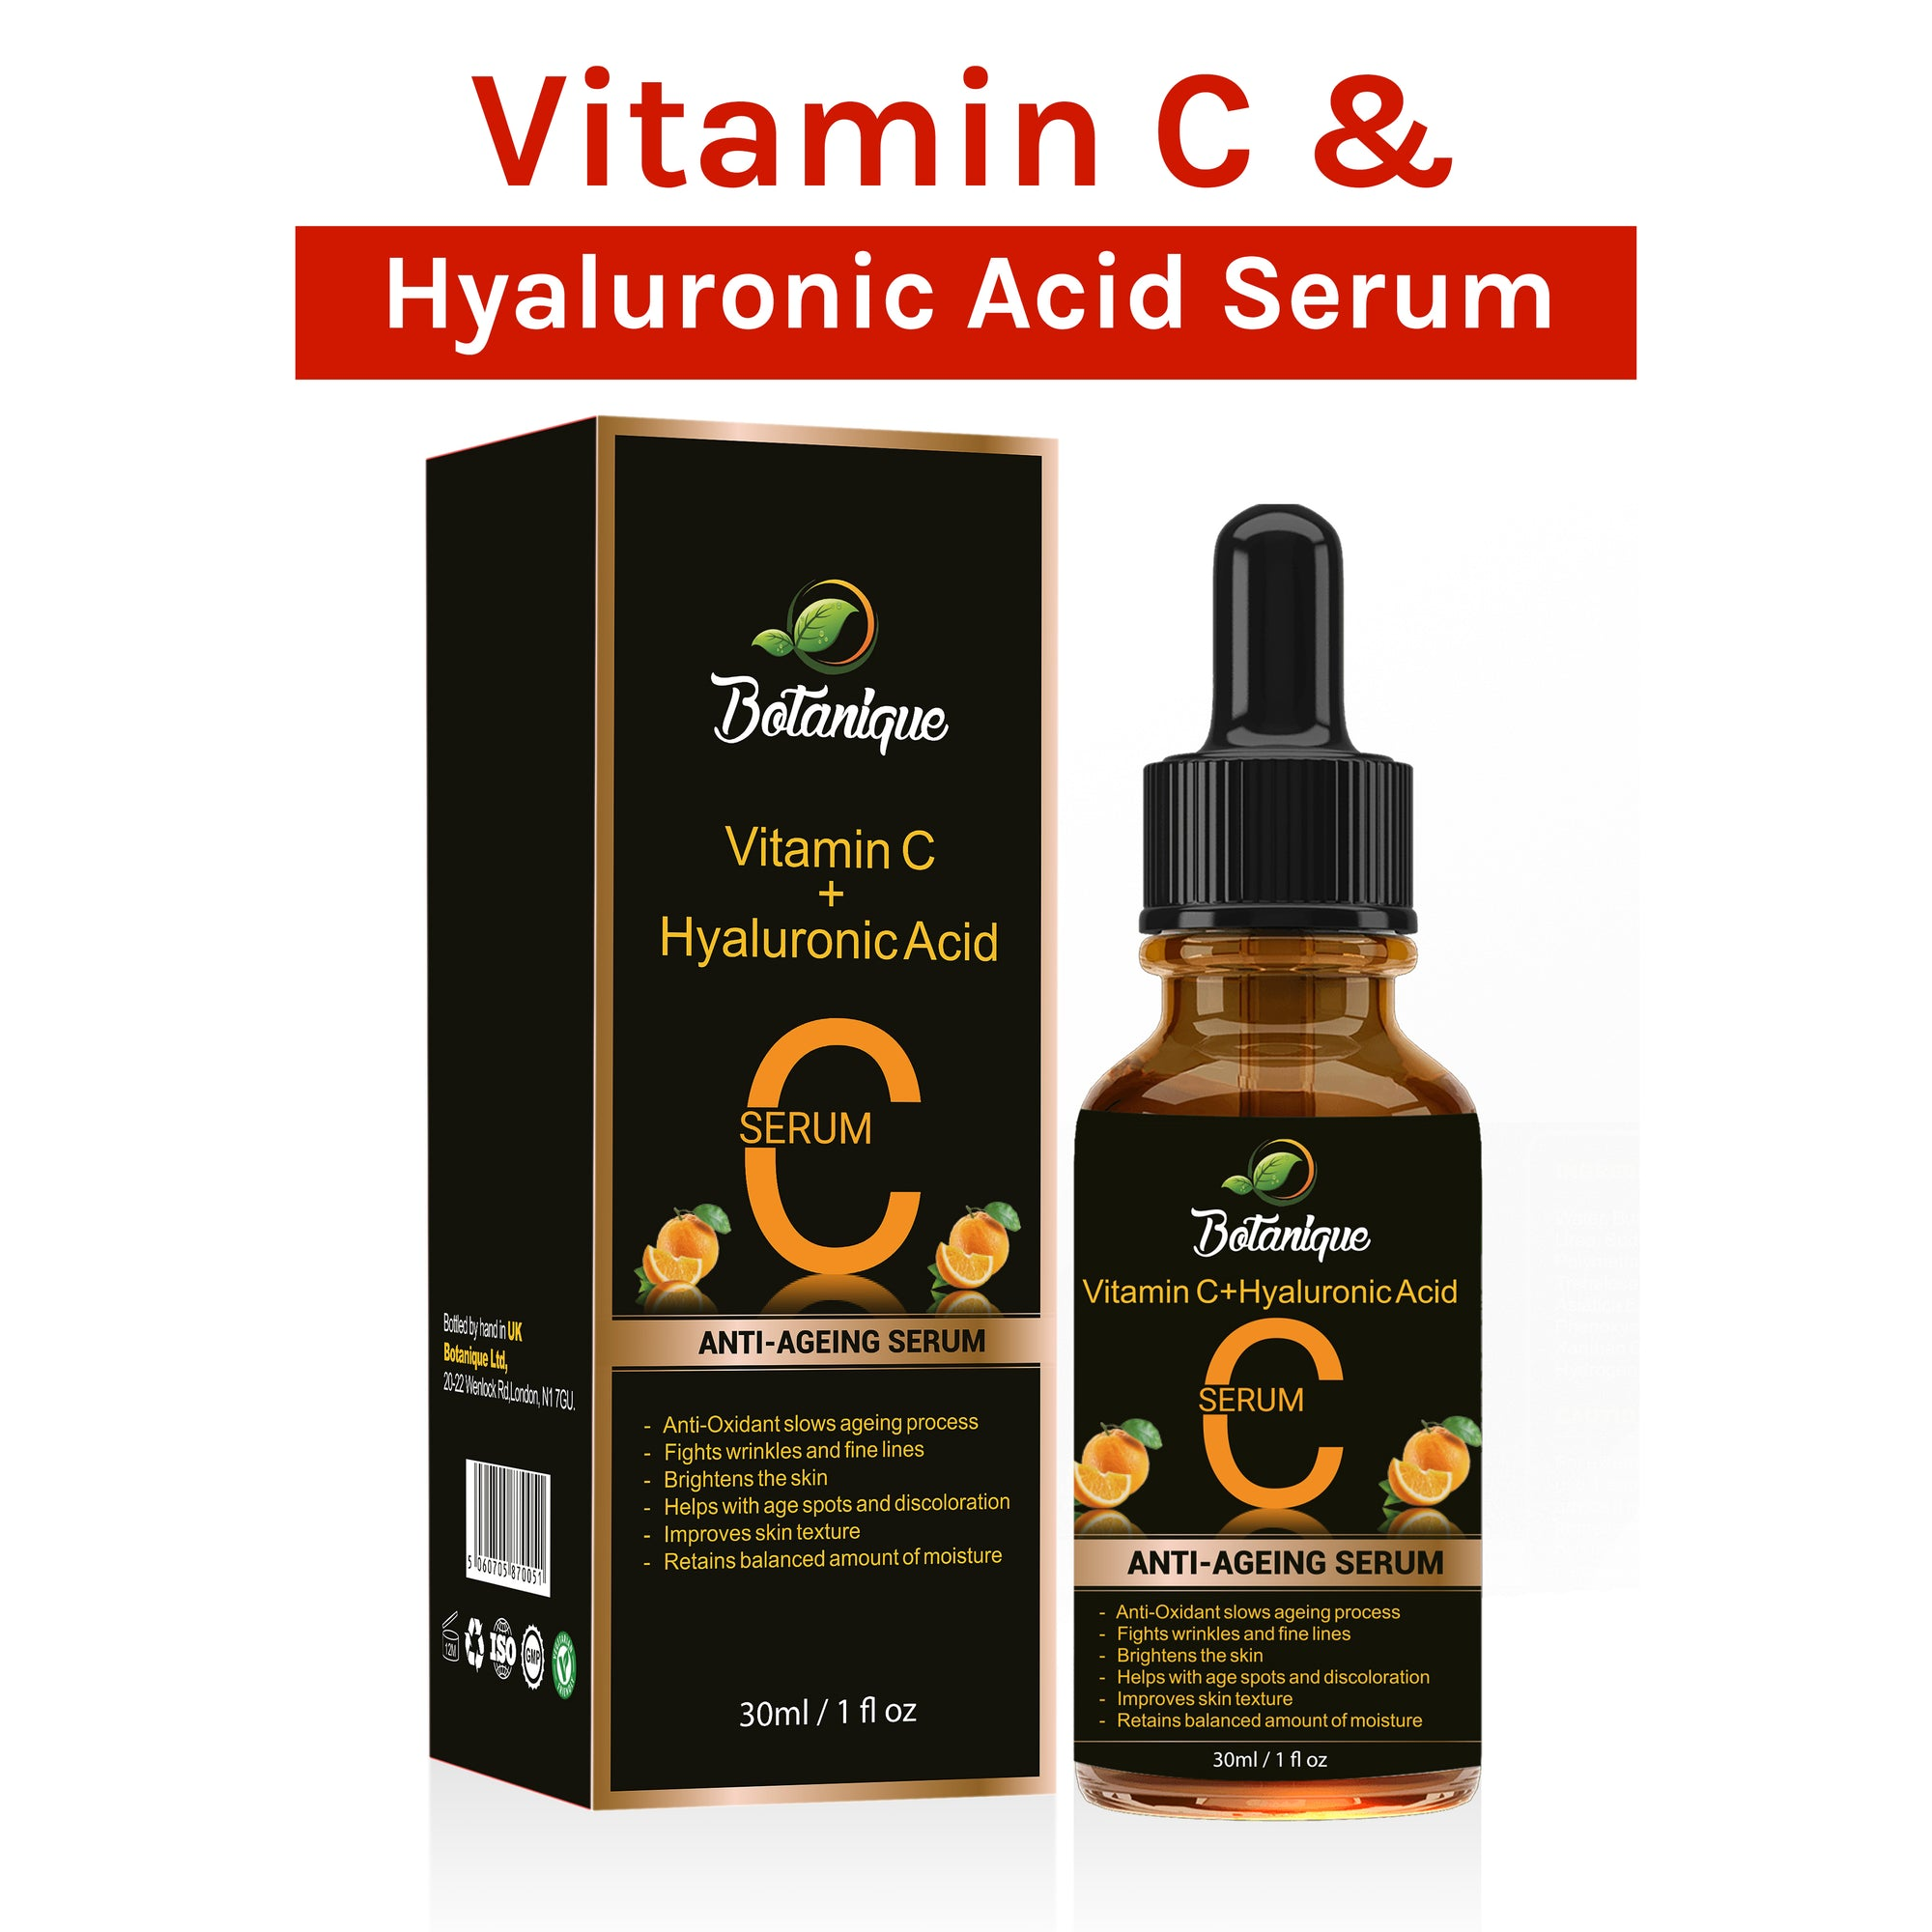 Vitamin C and Hyaluronic Acid Serum